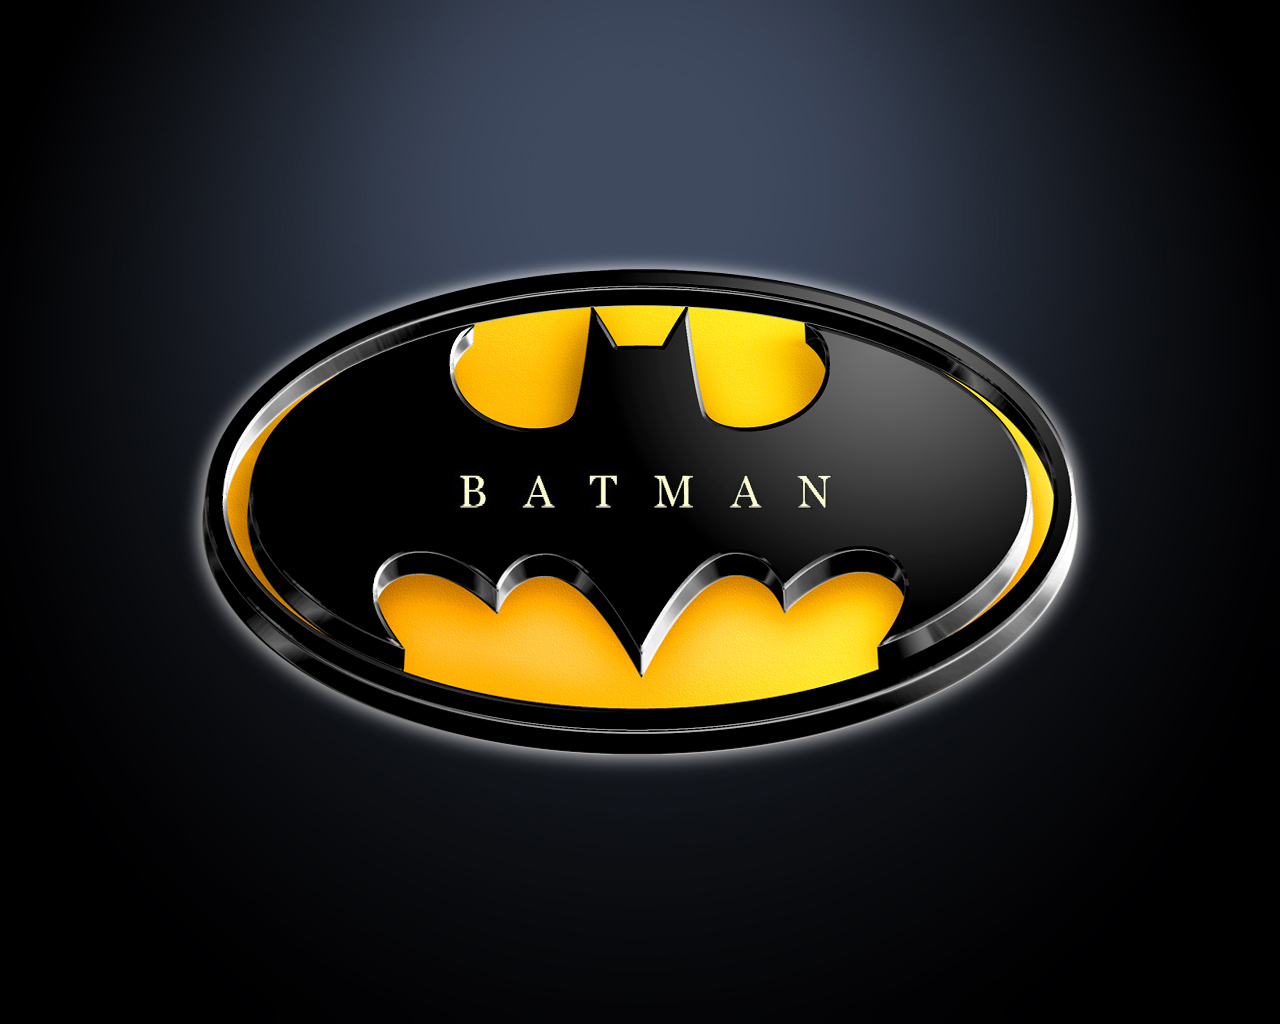 Batman-Logo-batman-9683803-1280-1024.jpg